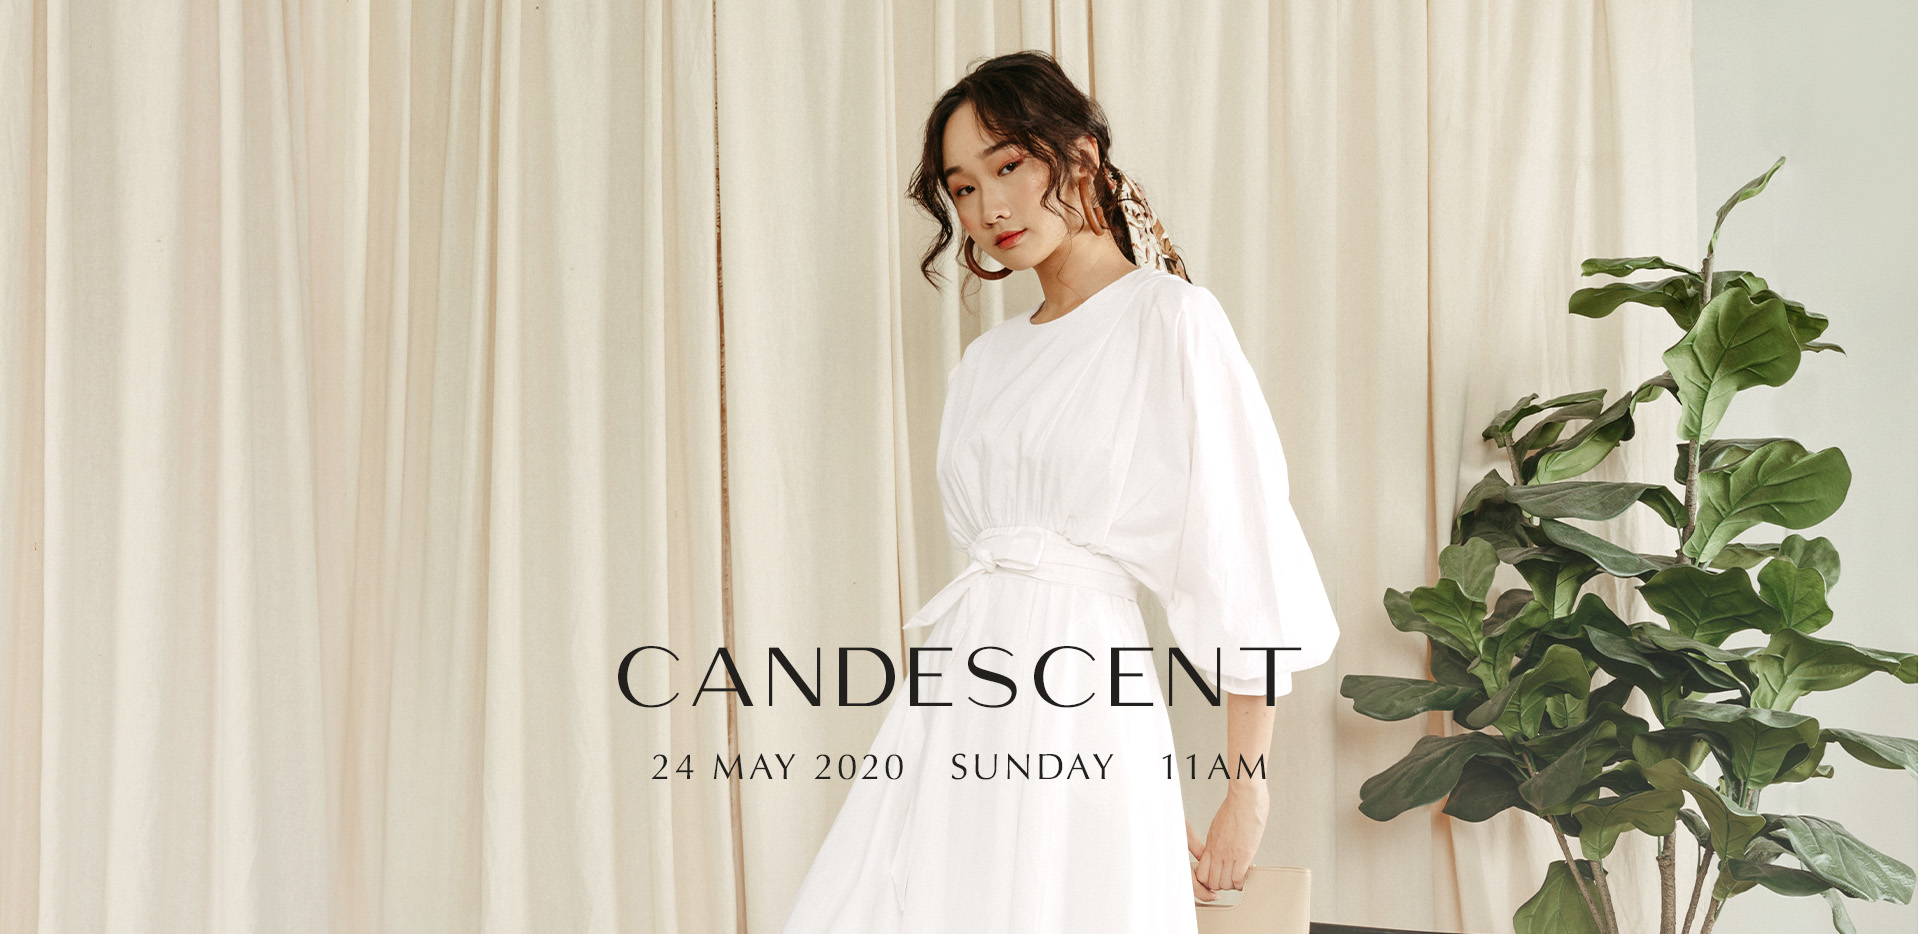 CANDESCENT